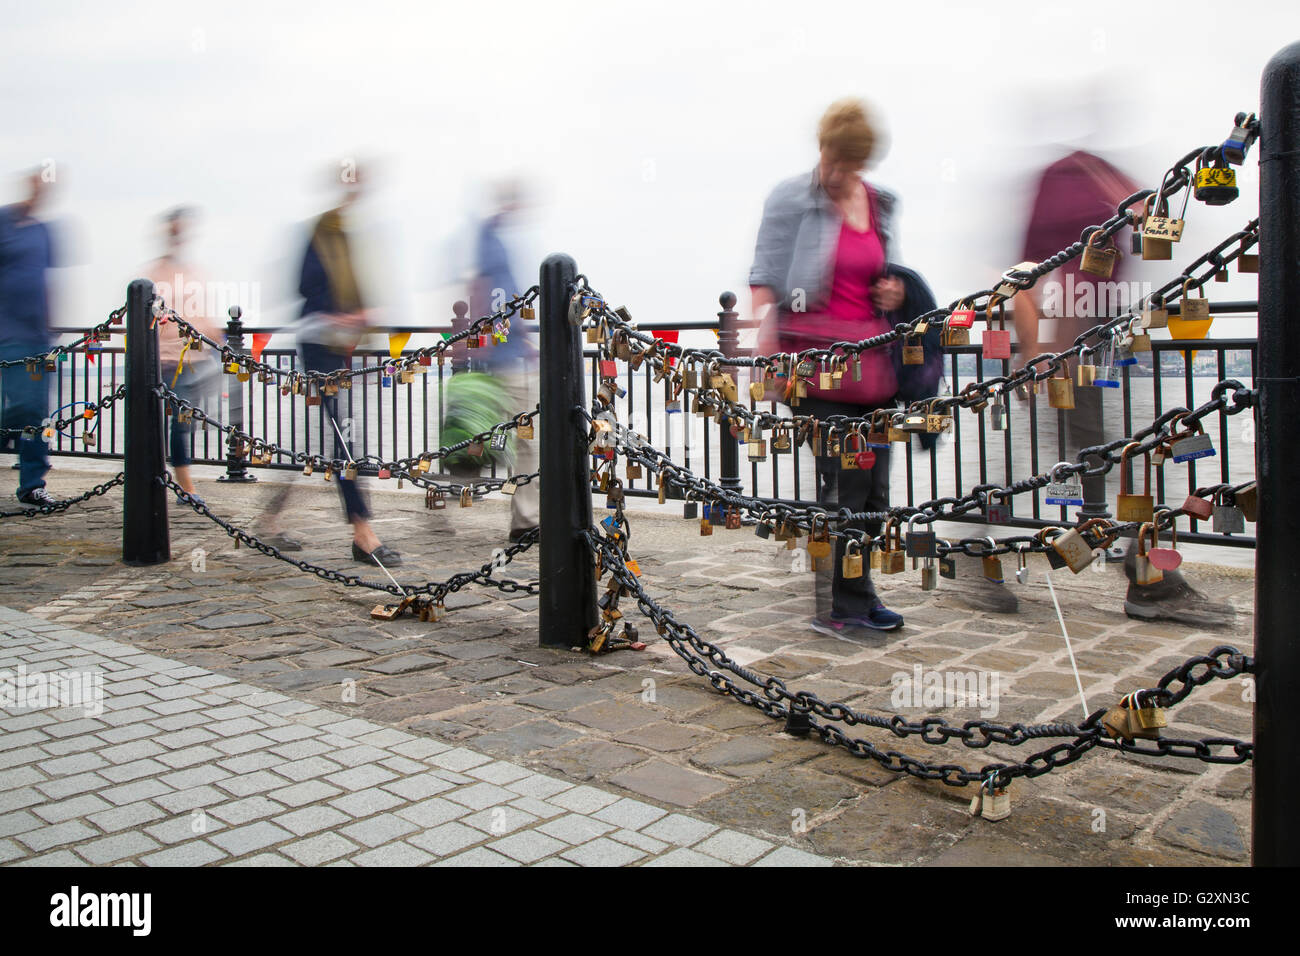 Out of focus, blurred figures, Crowds, tourists, day-trippers, visitors and tourists, visit the tall ships event - Stock Image